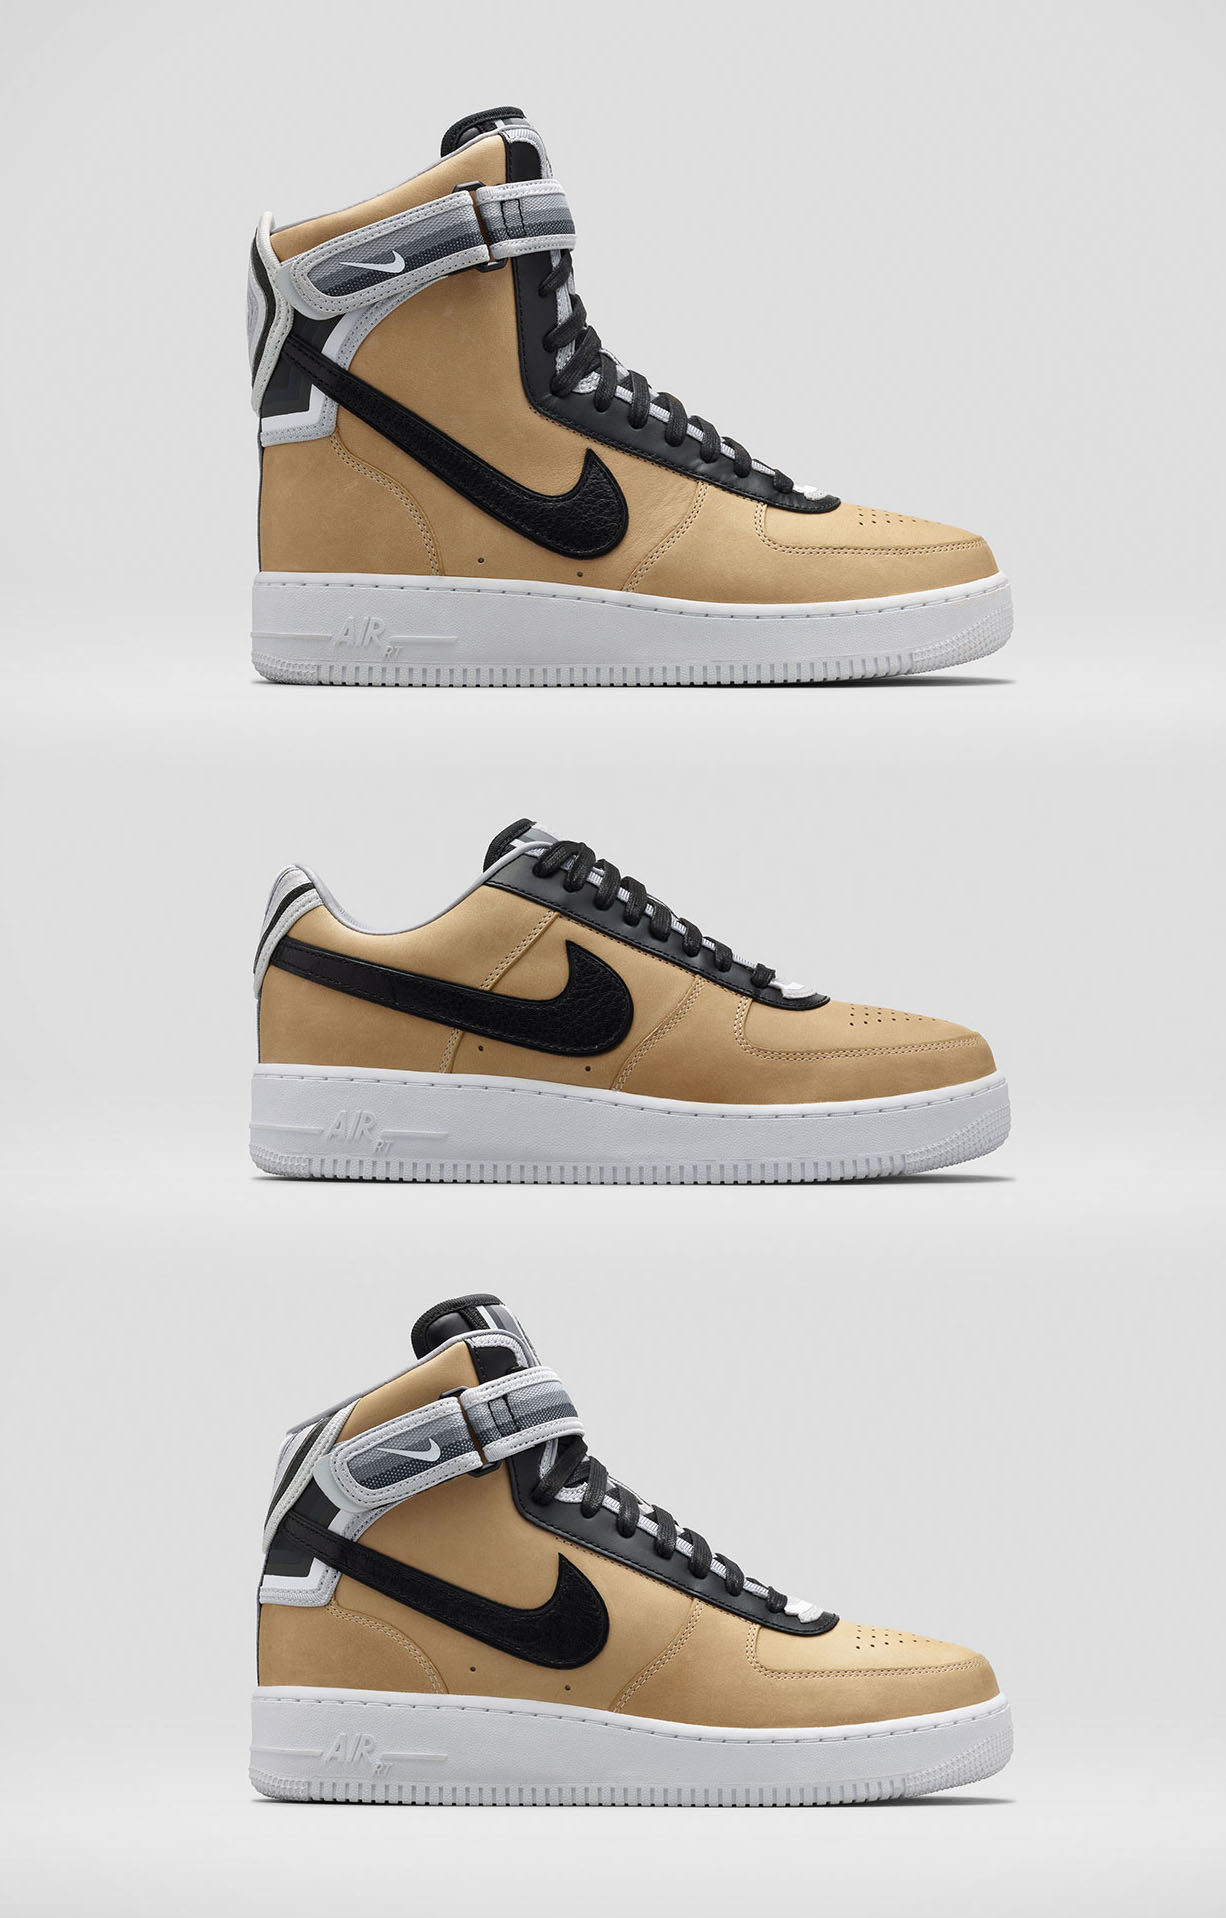 Nike R.T. Riccardo Tisci Air Force 1 Beige Collection